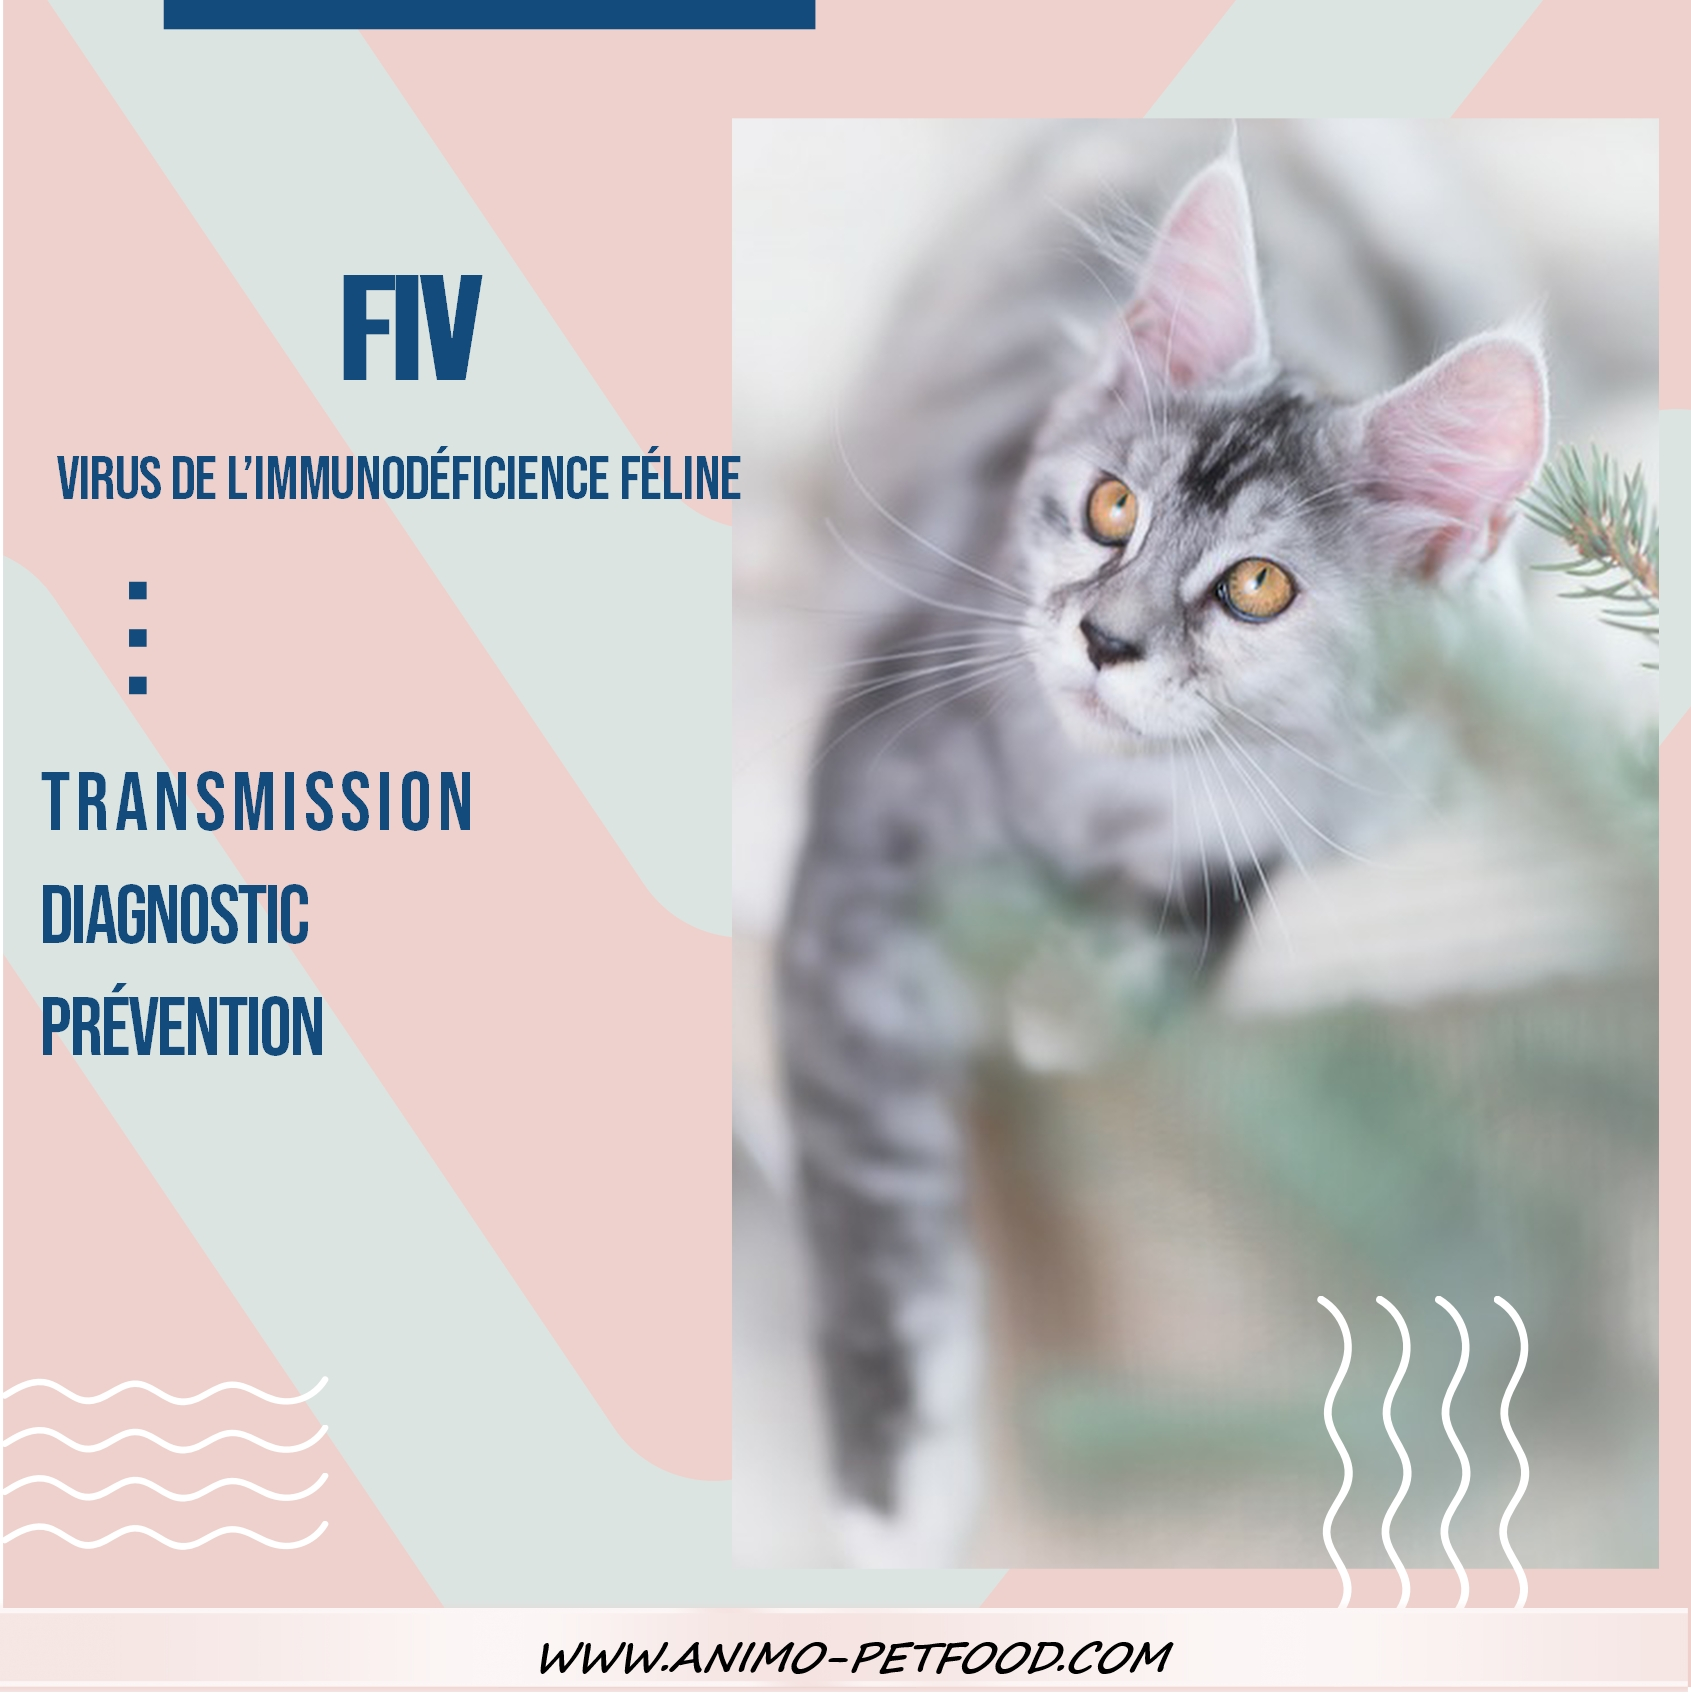 Virus de l'immunodéficience féline-FIV CHAT-virus chat- sida du chat